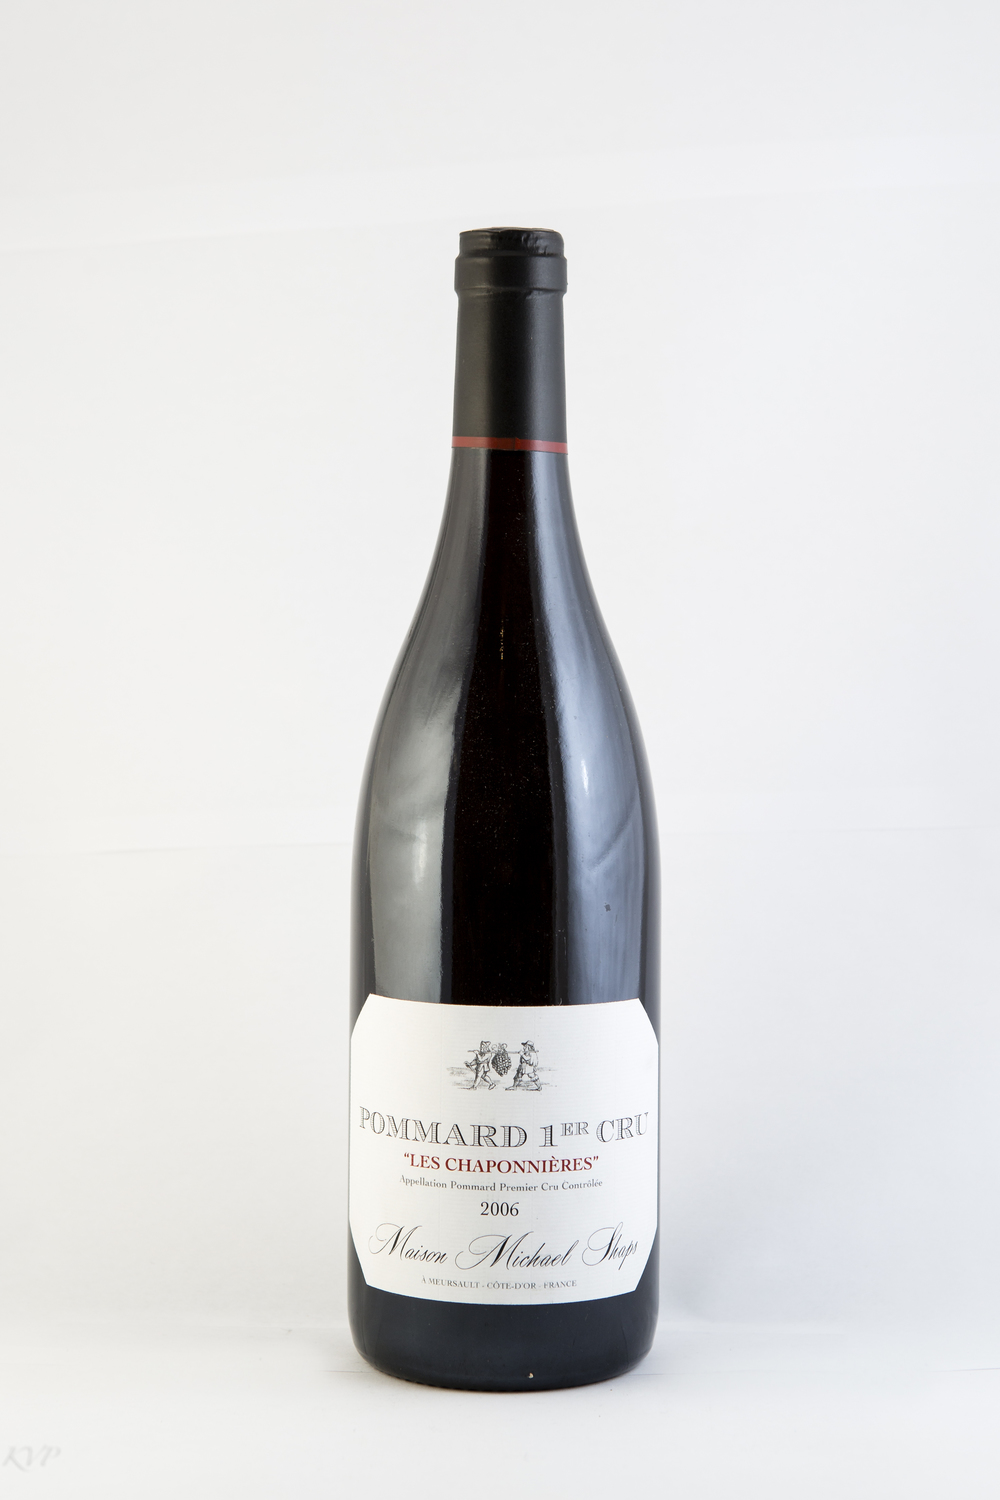 Maison Shaps 2005 Pommard 1er Cru Les Chaponnieres  $69 The site, Vaumuriens – Haute, is known for having a deeply concentrated structure with big aggressive tannins and bold acidity, we think that our Pommard exhibits the true essence of this great appellation.  We balance out the wine with 30-50% new oak in each vintage to help build weight and balance and structure the wine for long-term aging.